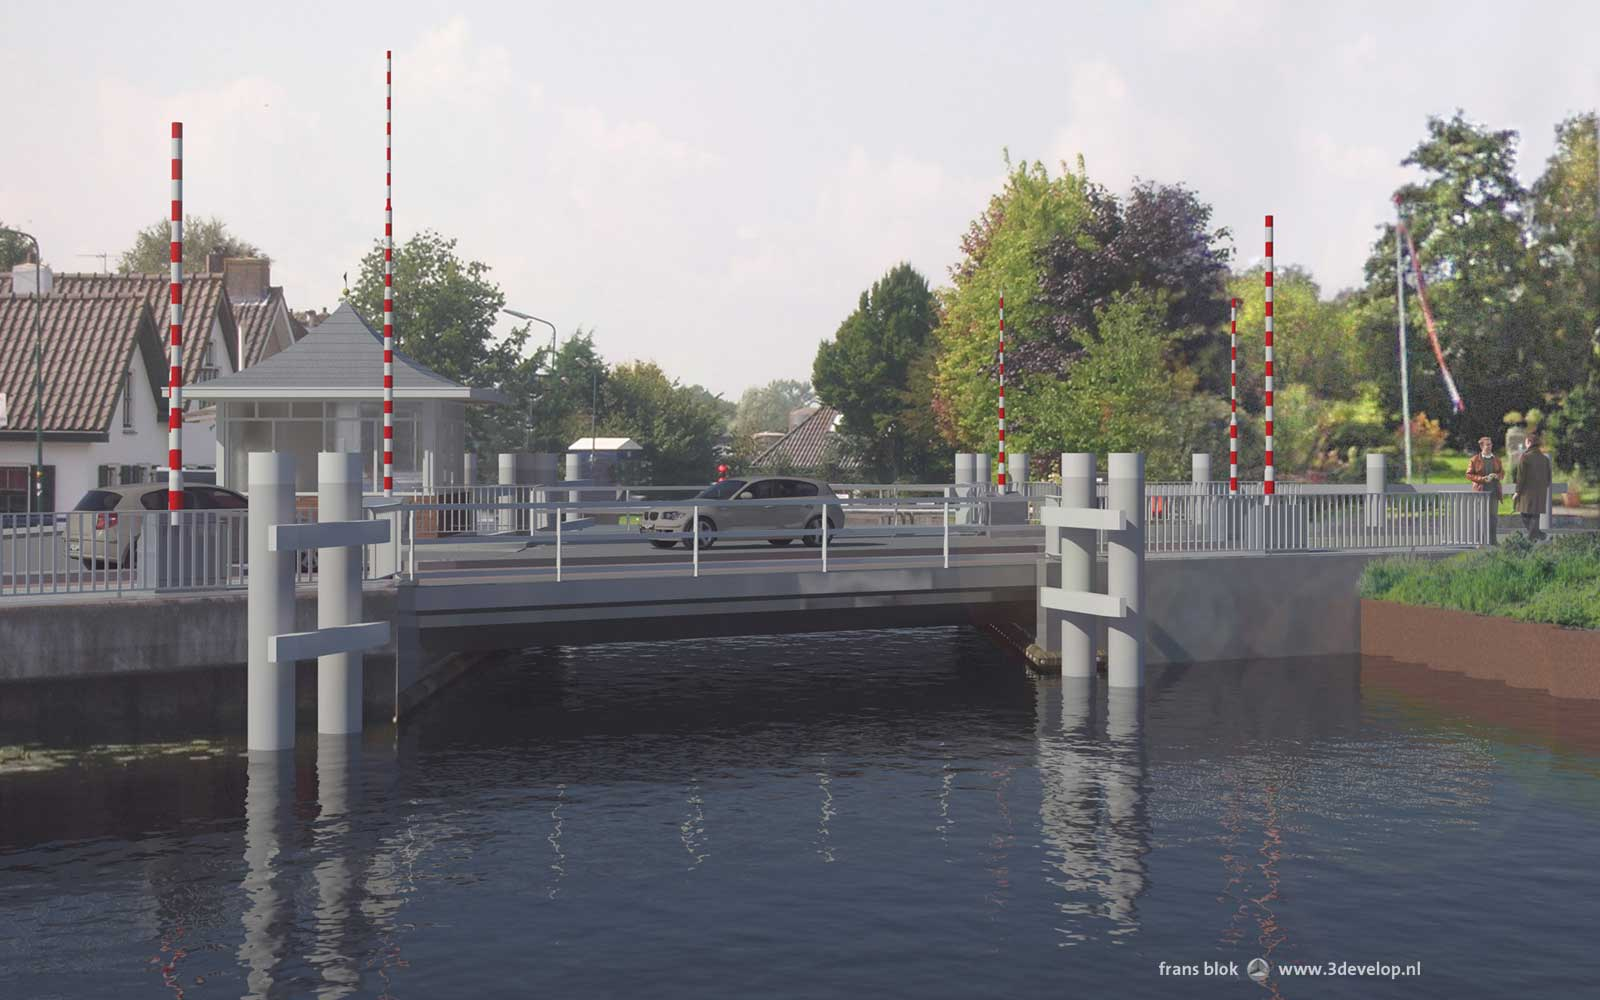 Kollenbridge, Woerdense Verlaat - design: Royal HaskoningDHV